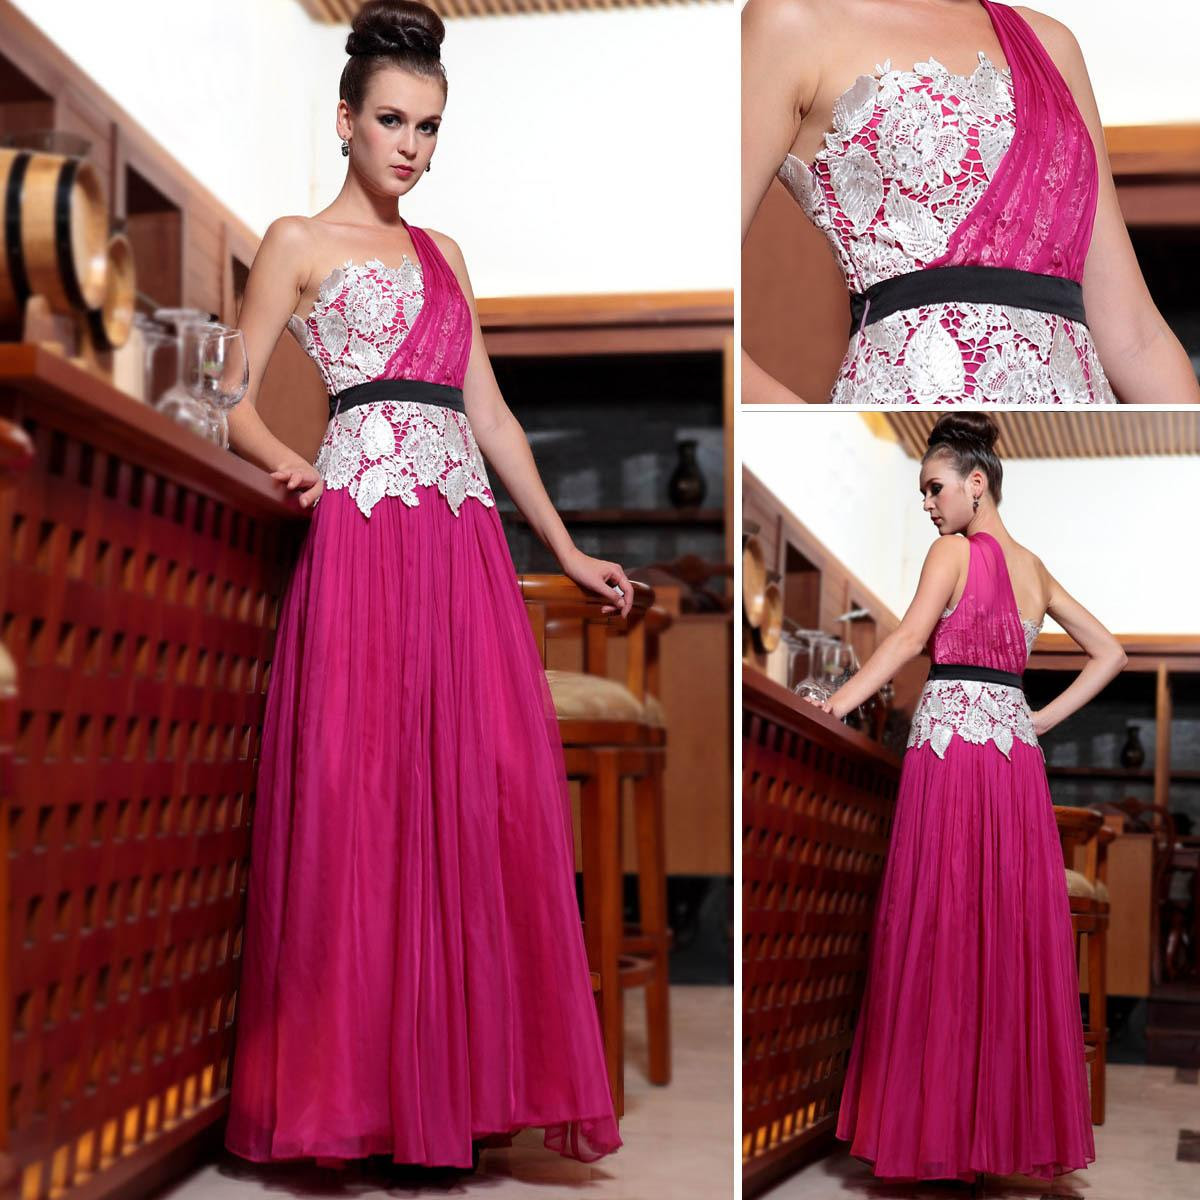 Evening dresses for 18 year olds